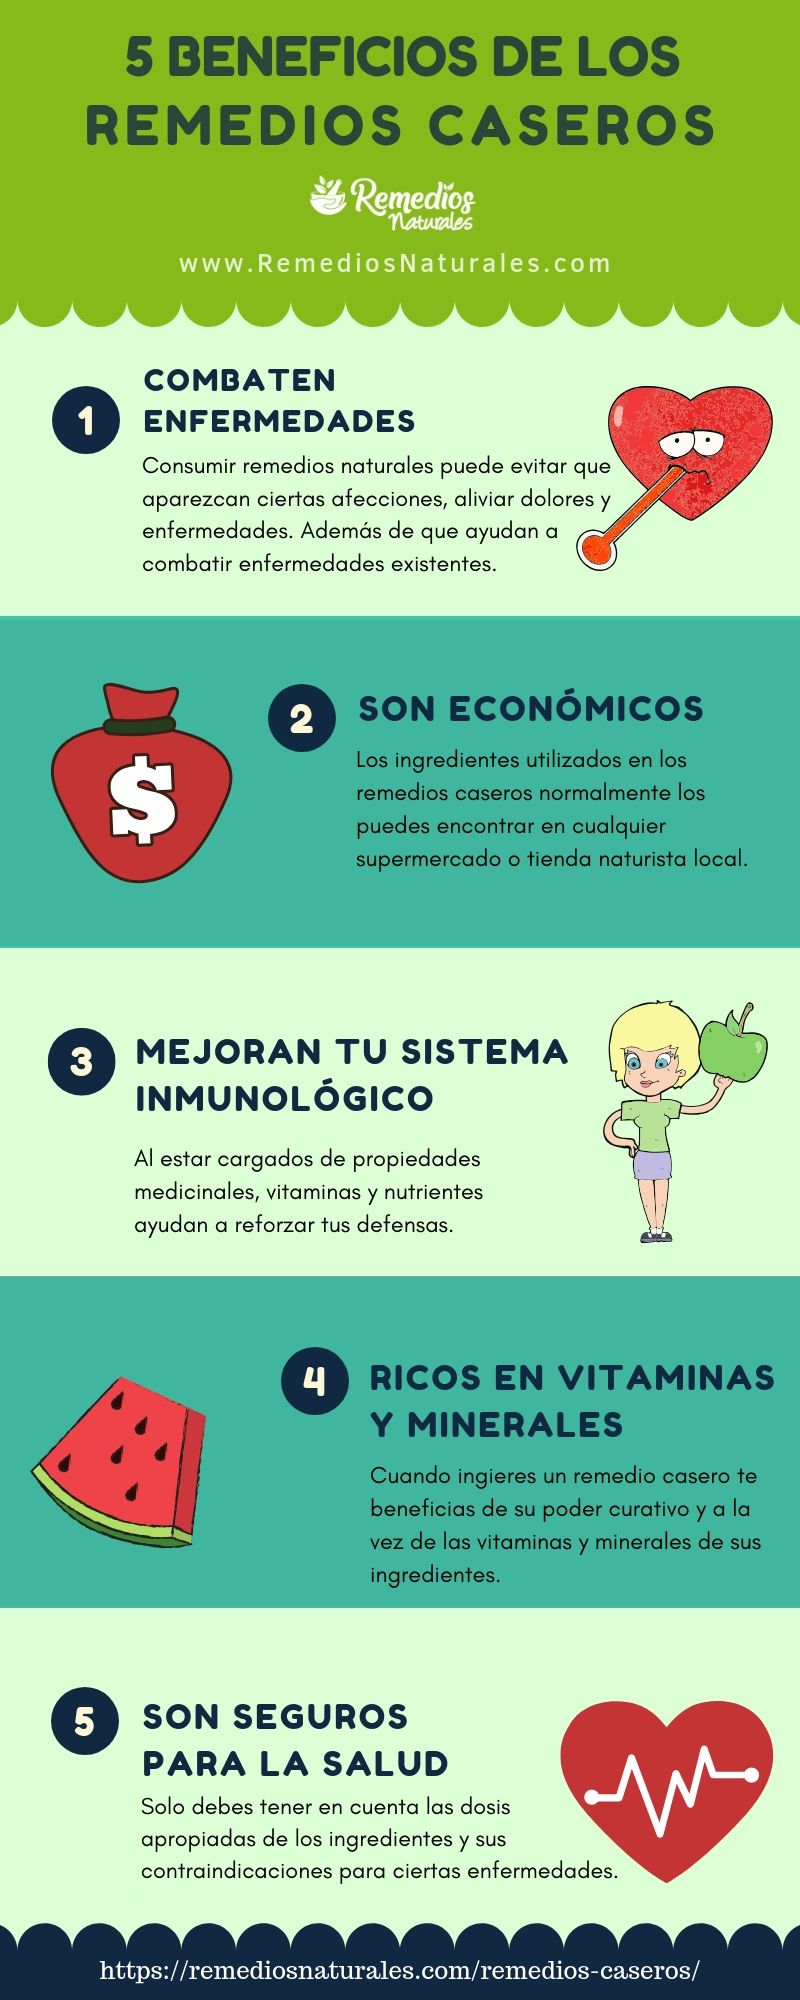 5 BENEFICIOS DE LOS REMEDIOS CASEROS